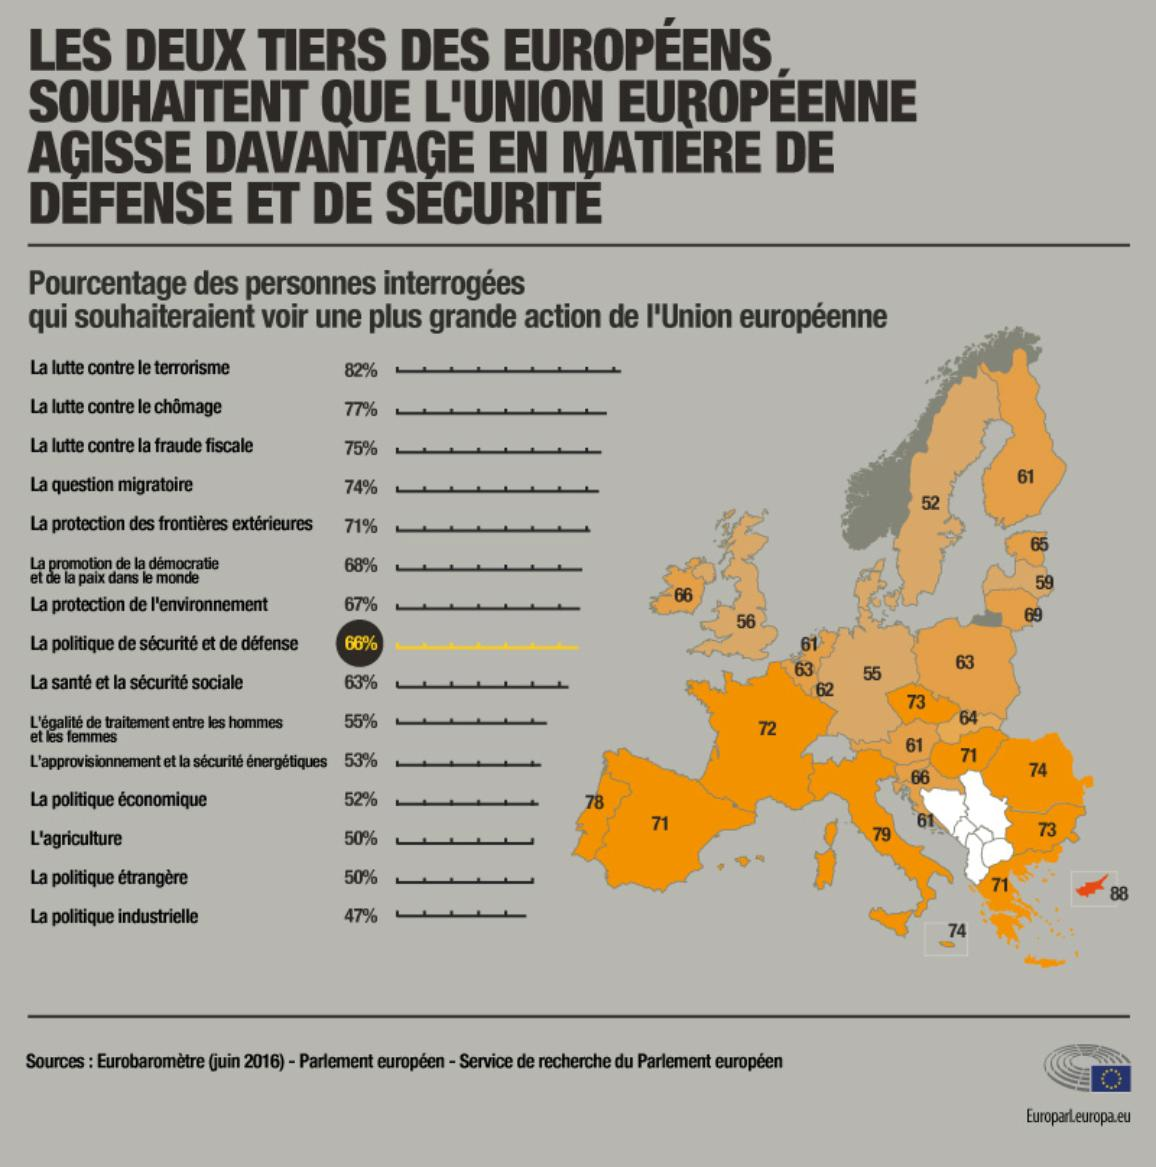 infographic illustration on defence poll in the EU